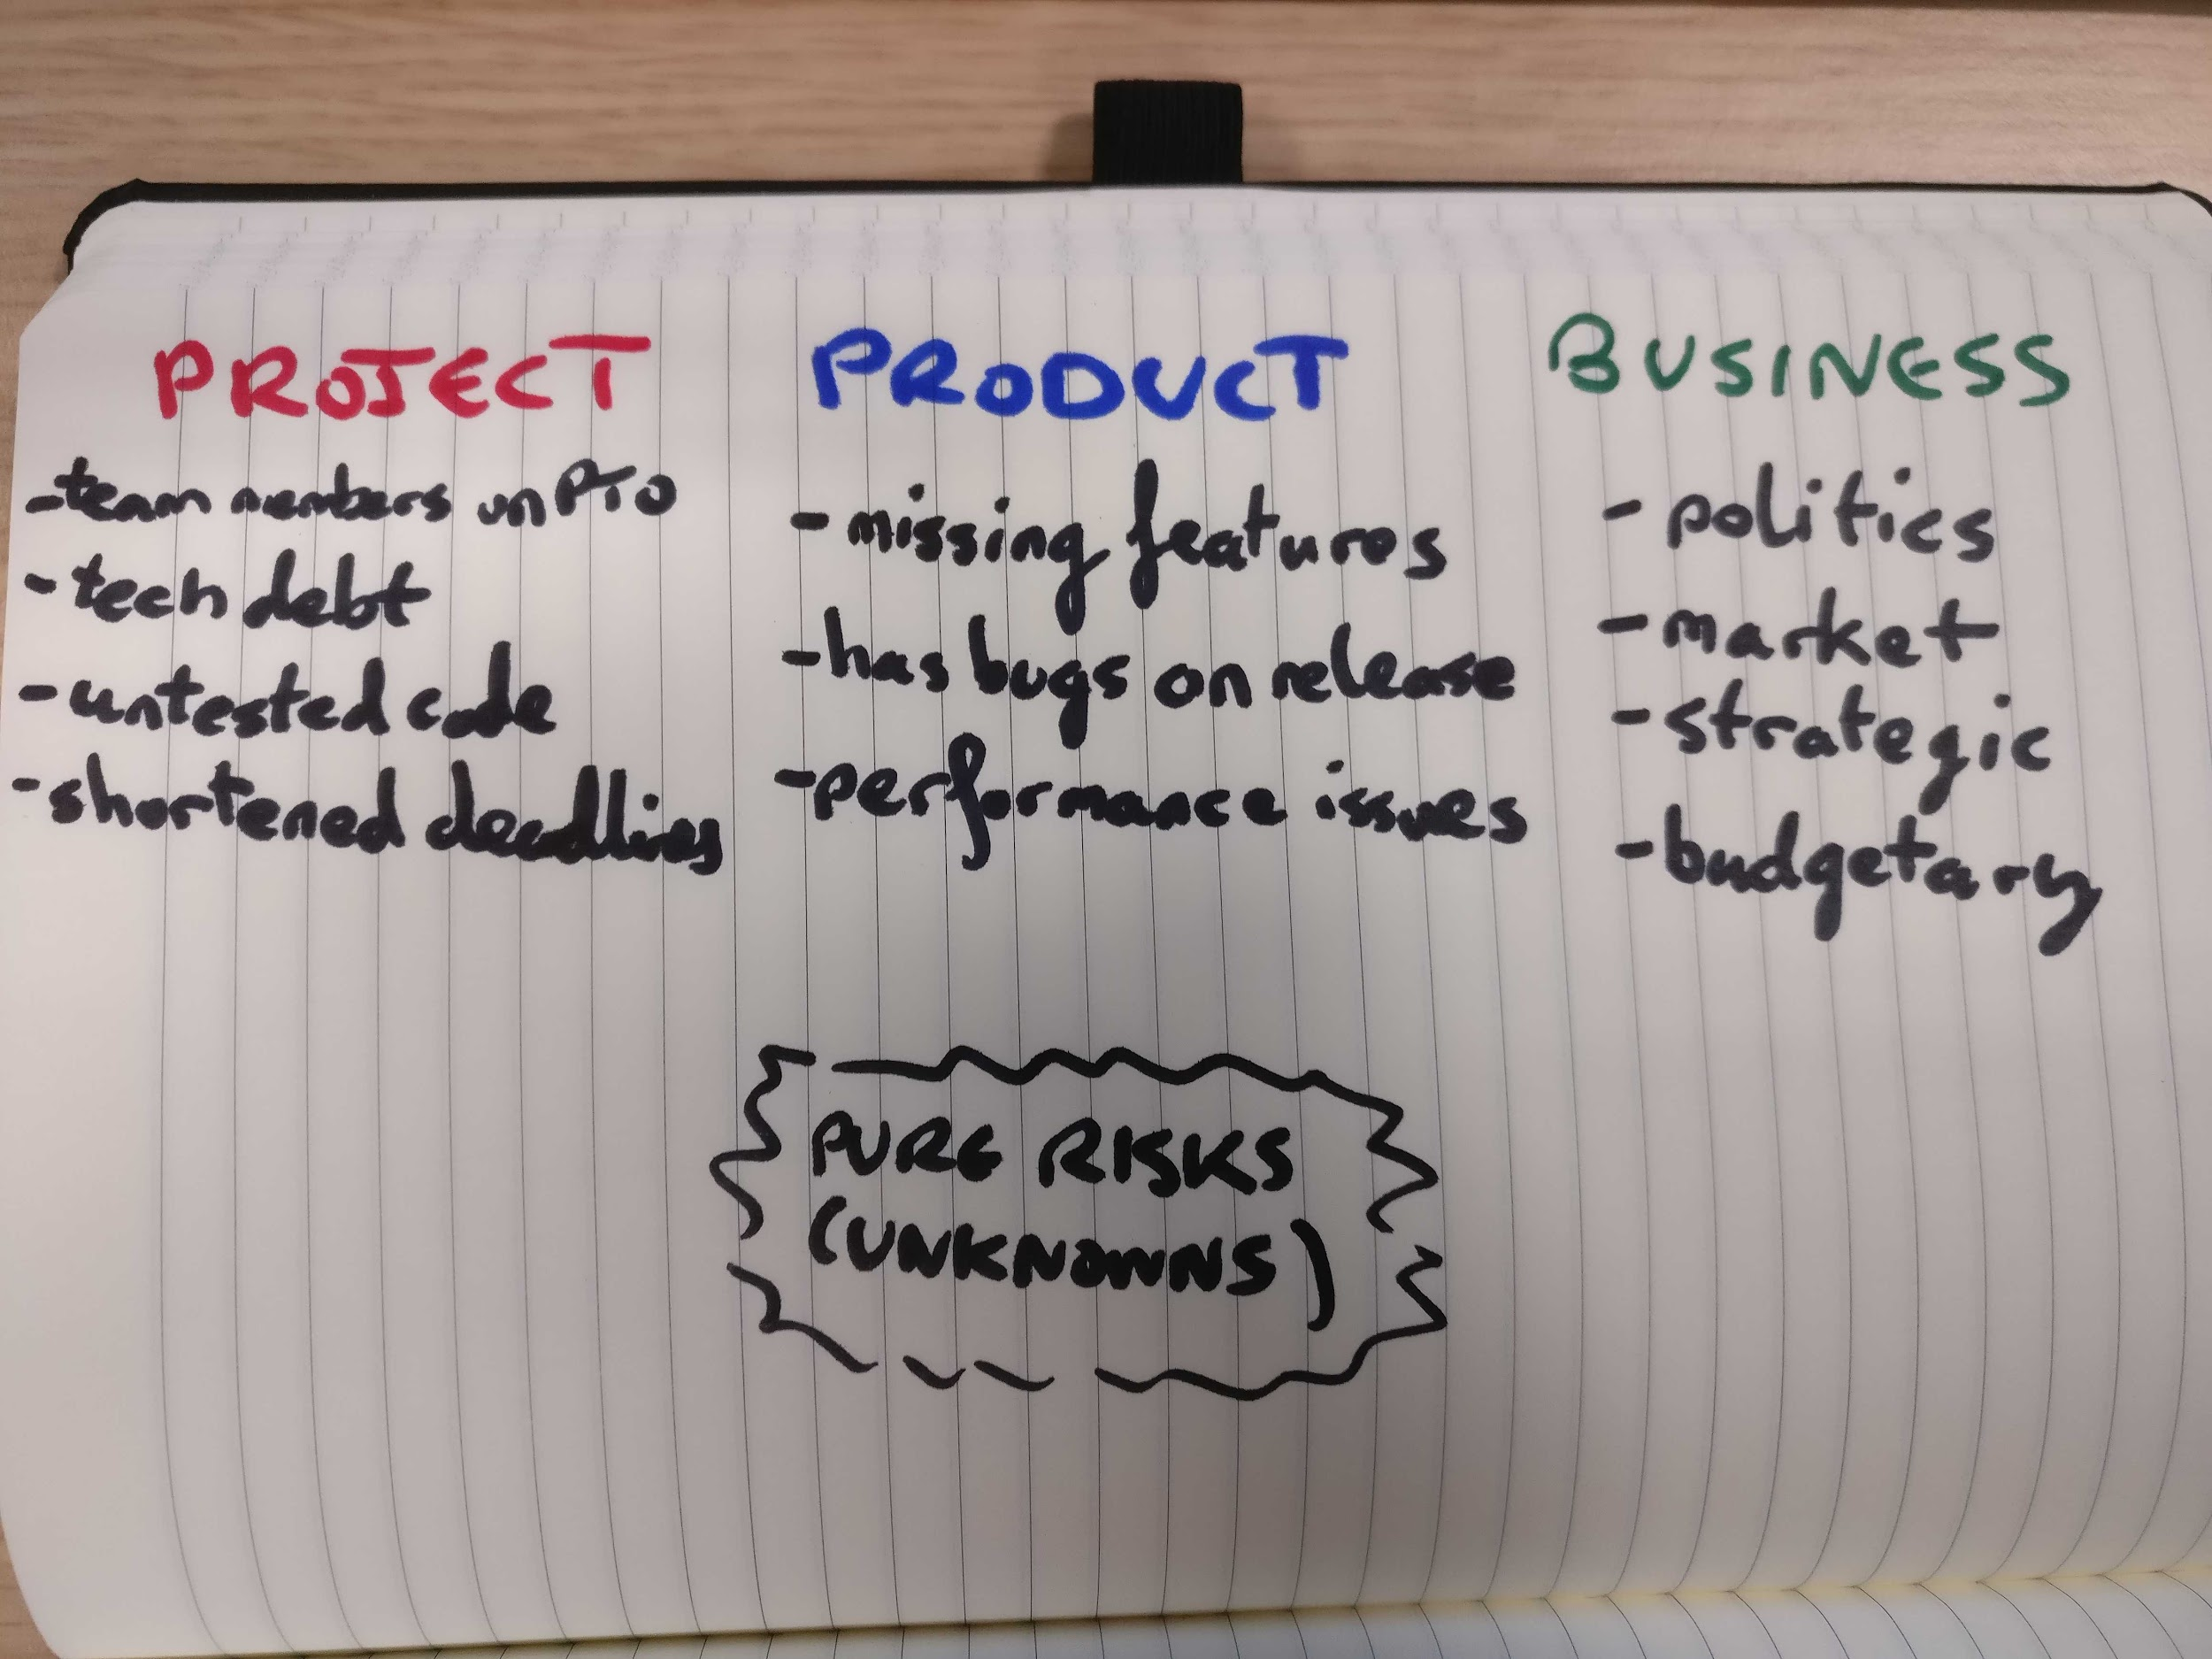 Risk Types - Project, Product, Business